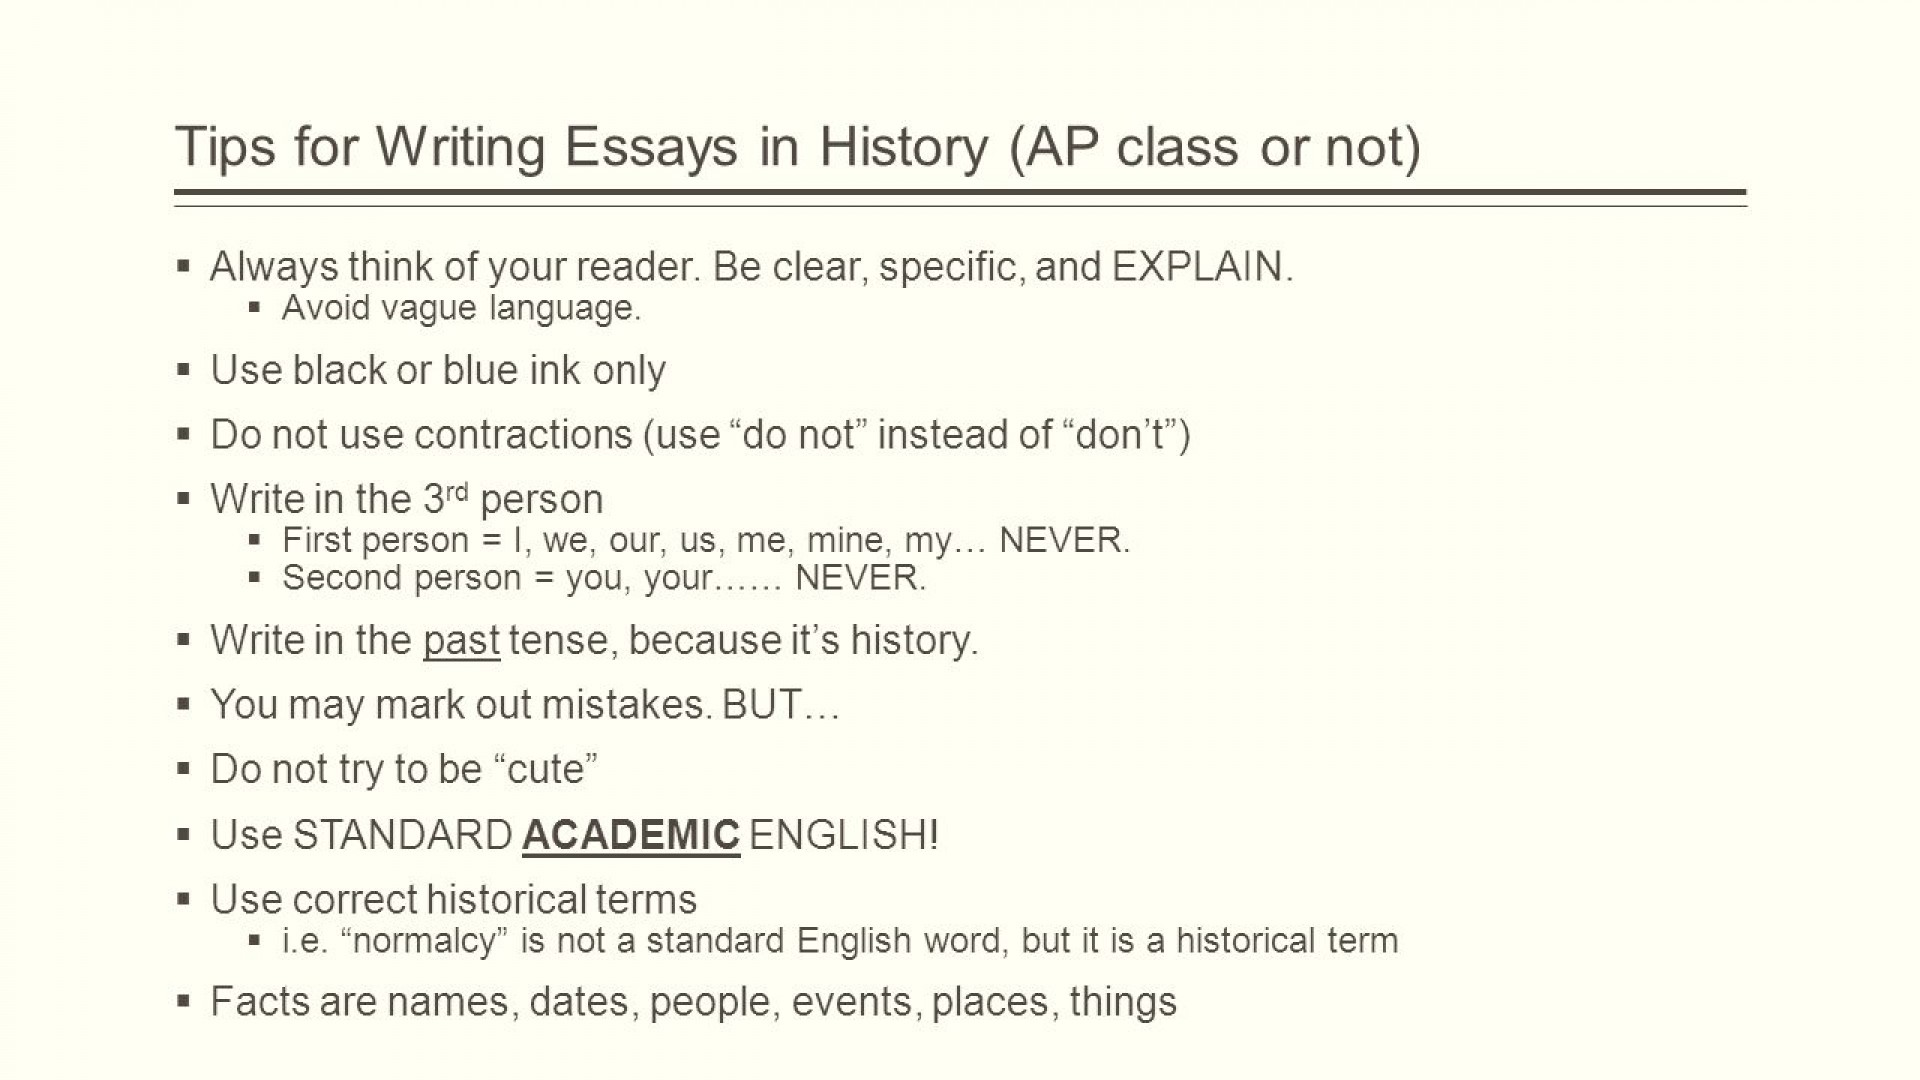 002 Essay Example How To Write Long The Question Ppt Video Online Download For Ap World Hi Fast Proposal Apush With Little Information Us History In One Night Dreaded A Periodization Good Comparative 1920